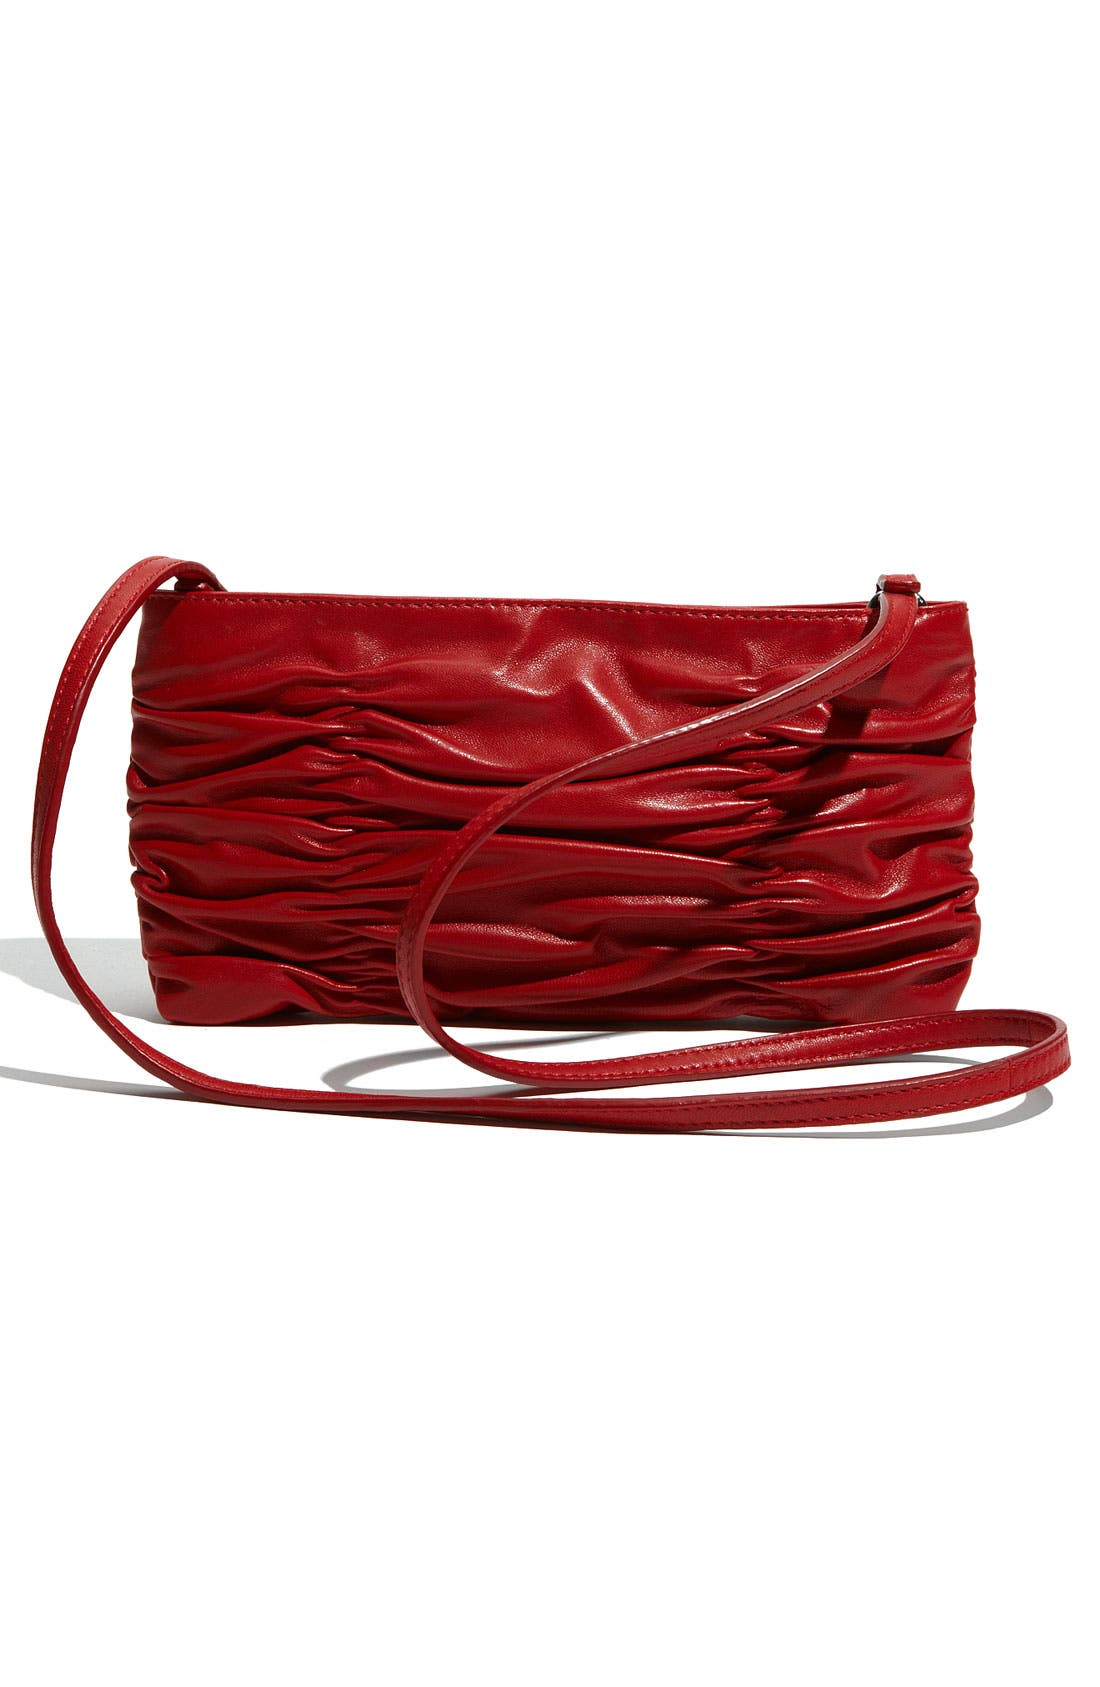 Alternate Image 2  - MICHAEL Michael Kors 'Webster' Clutch